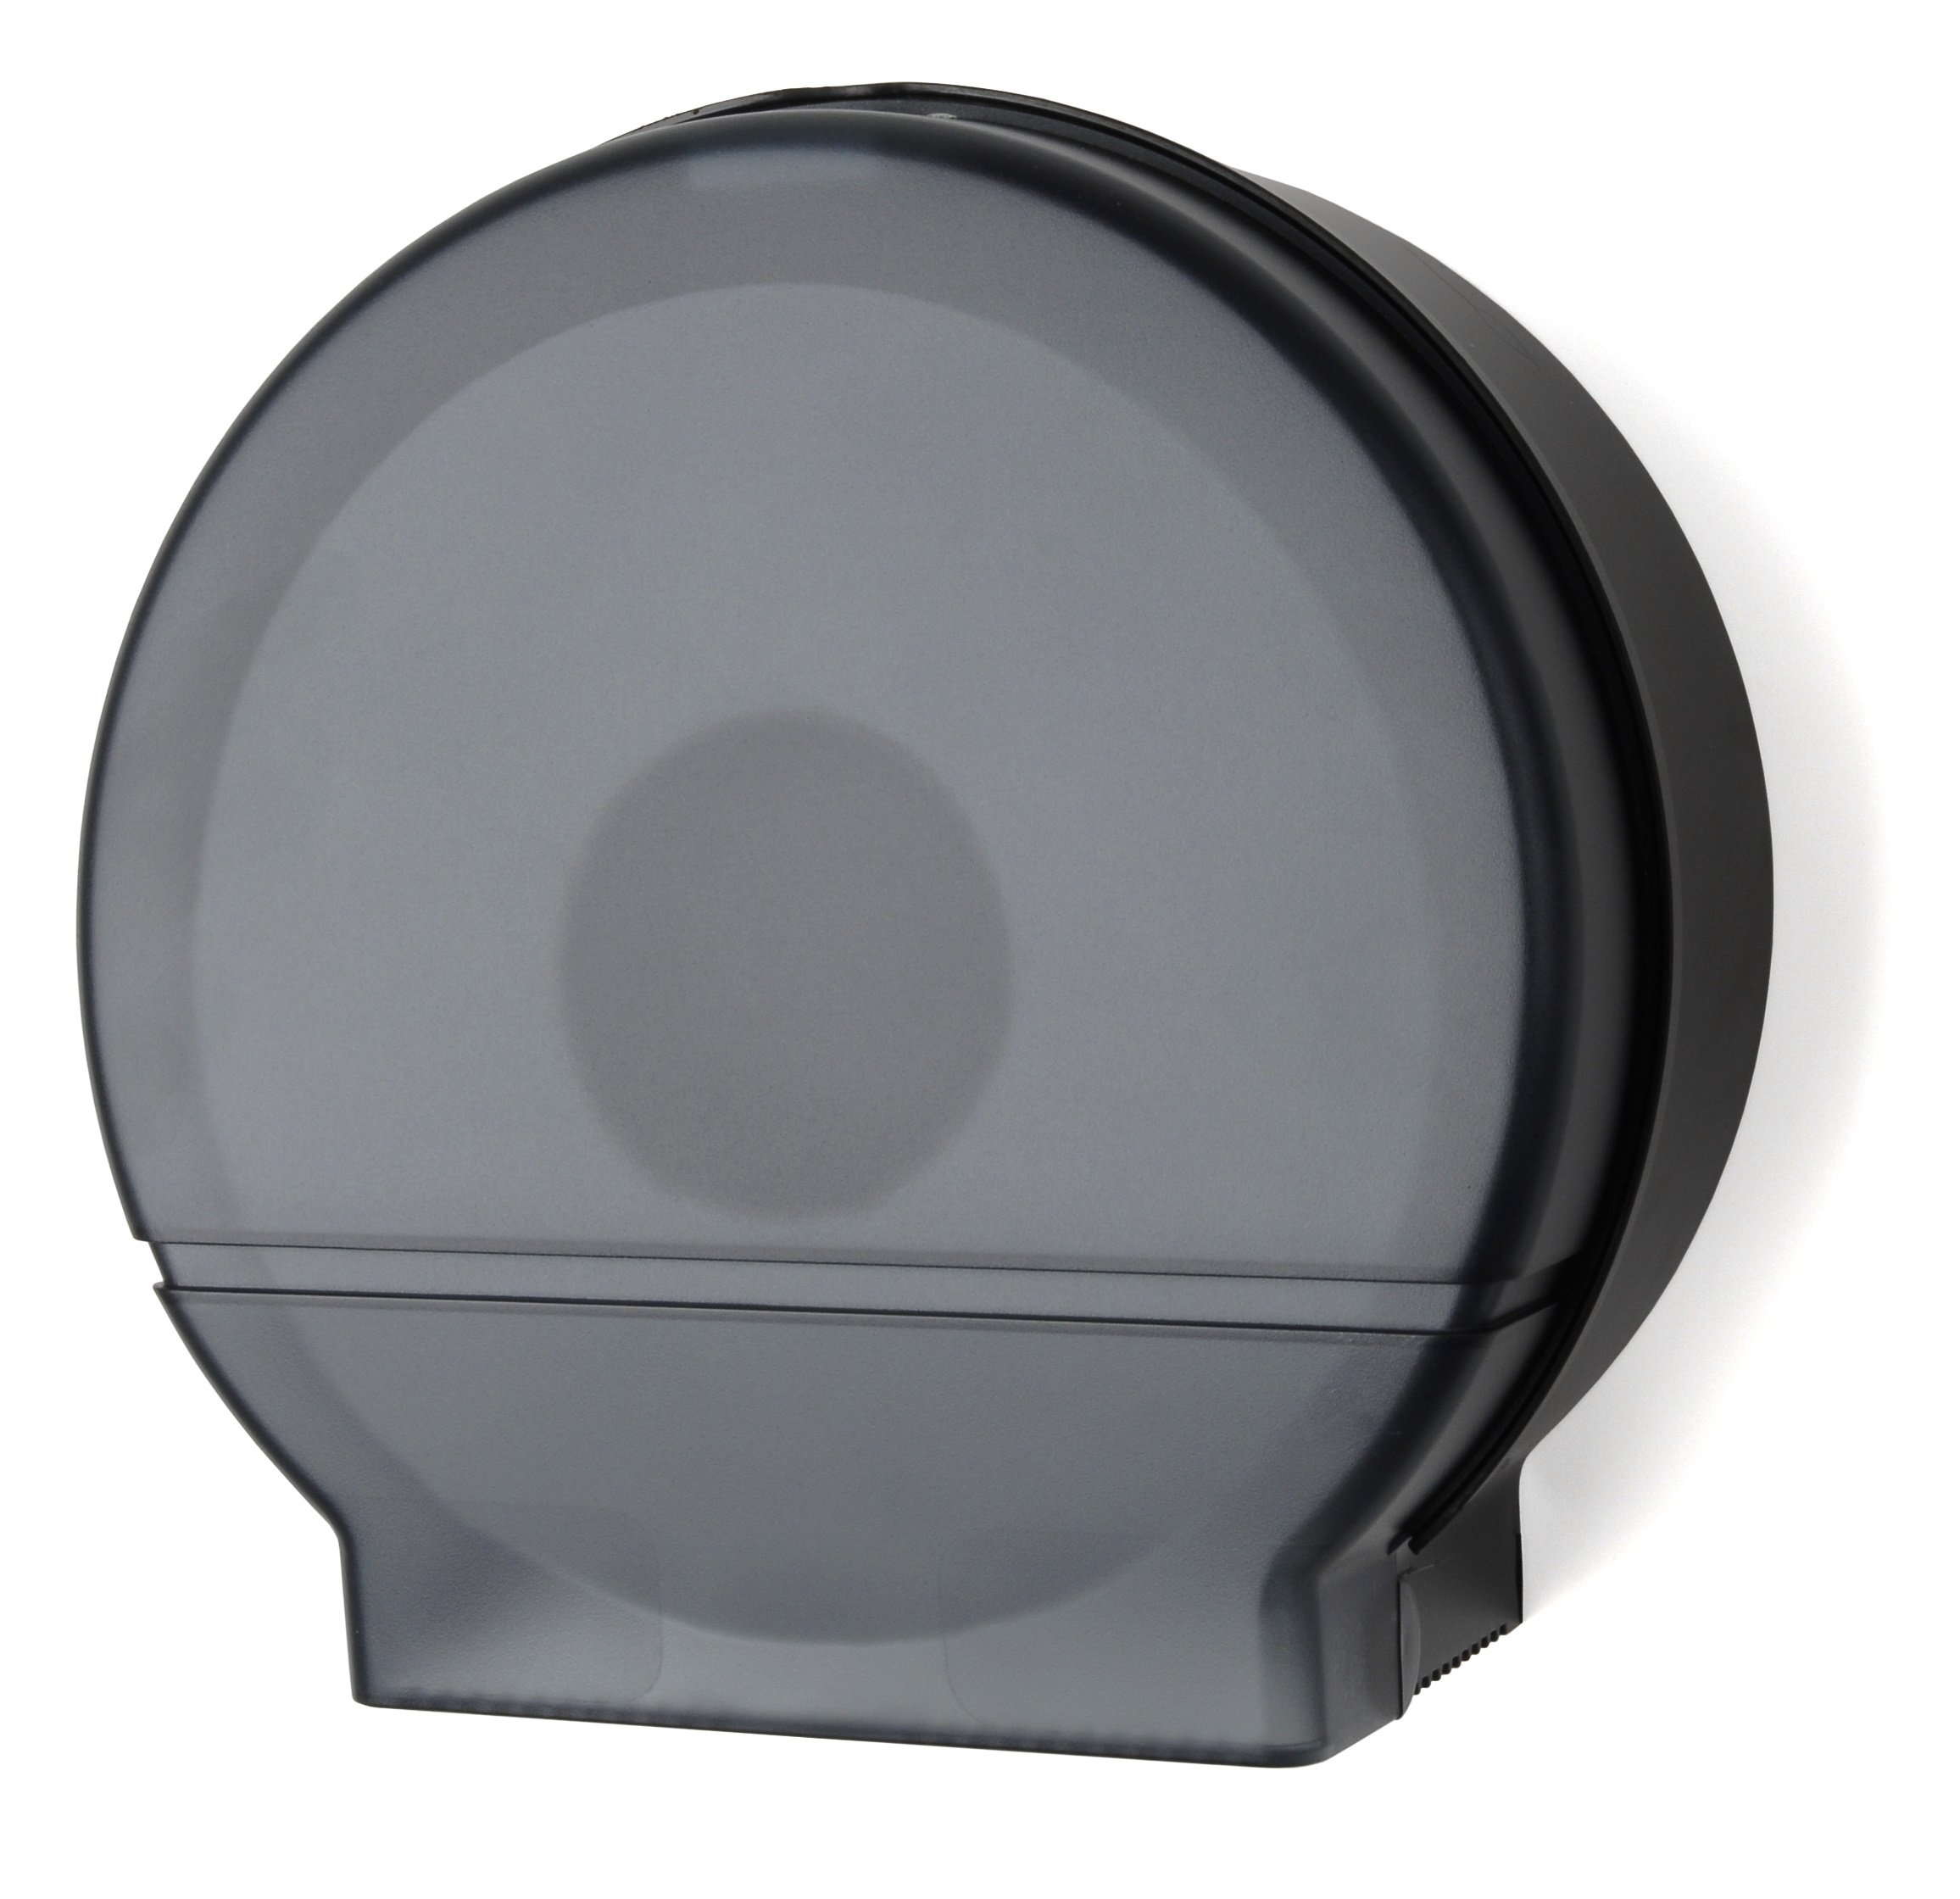 Palmer Fixture RD0026-02F Single Roll Jumbo Tissue Dispenser with Core Adaptor, Black Translucent